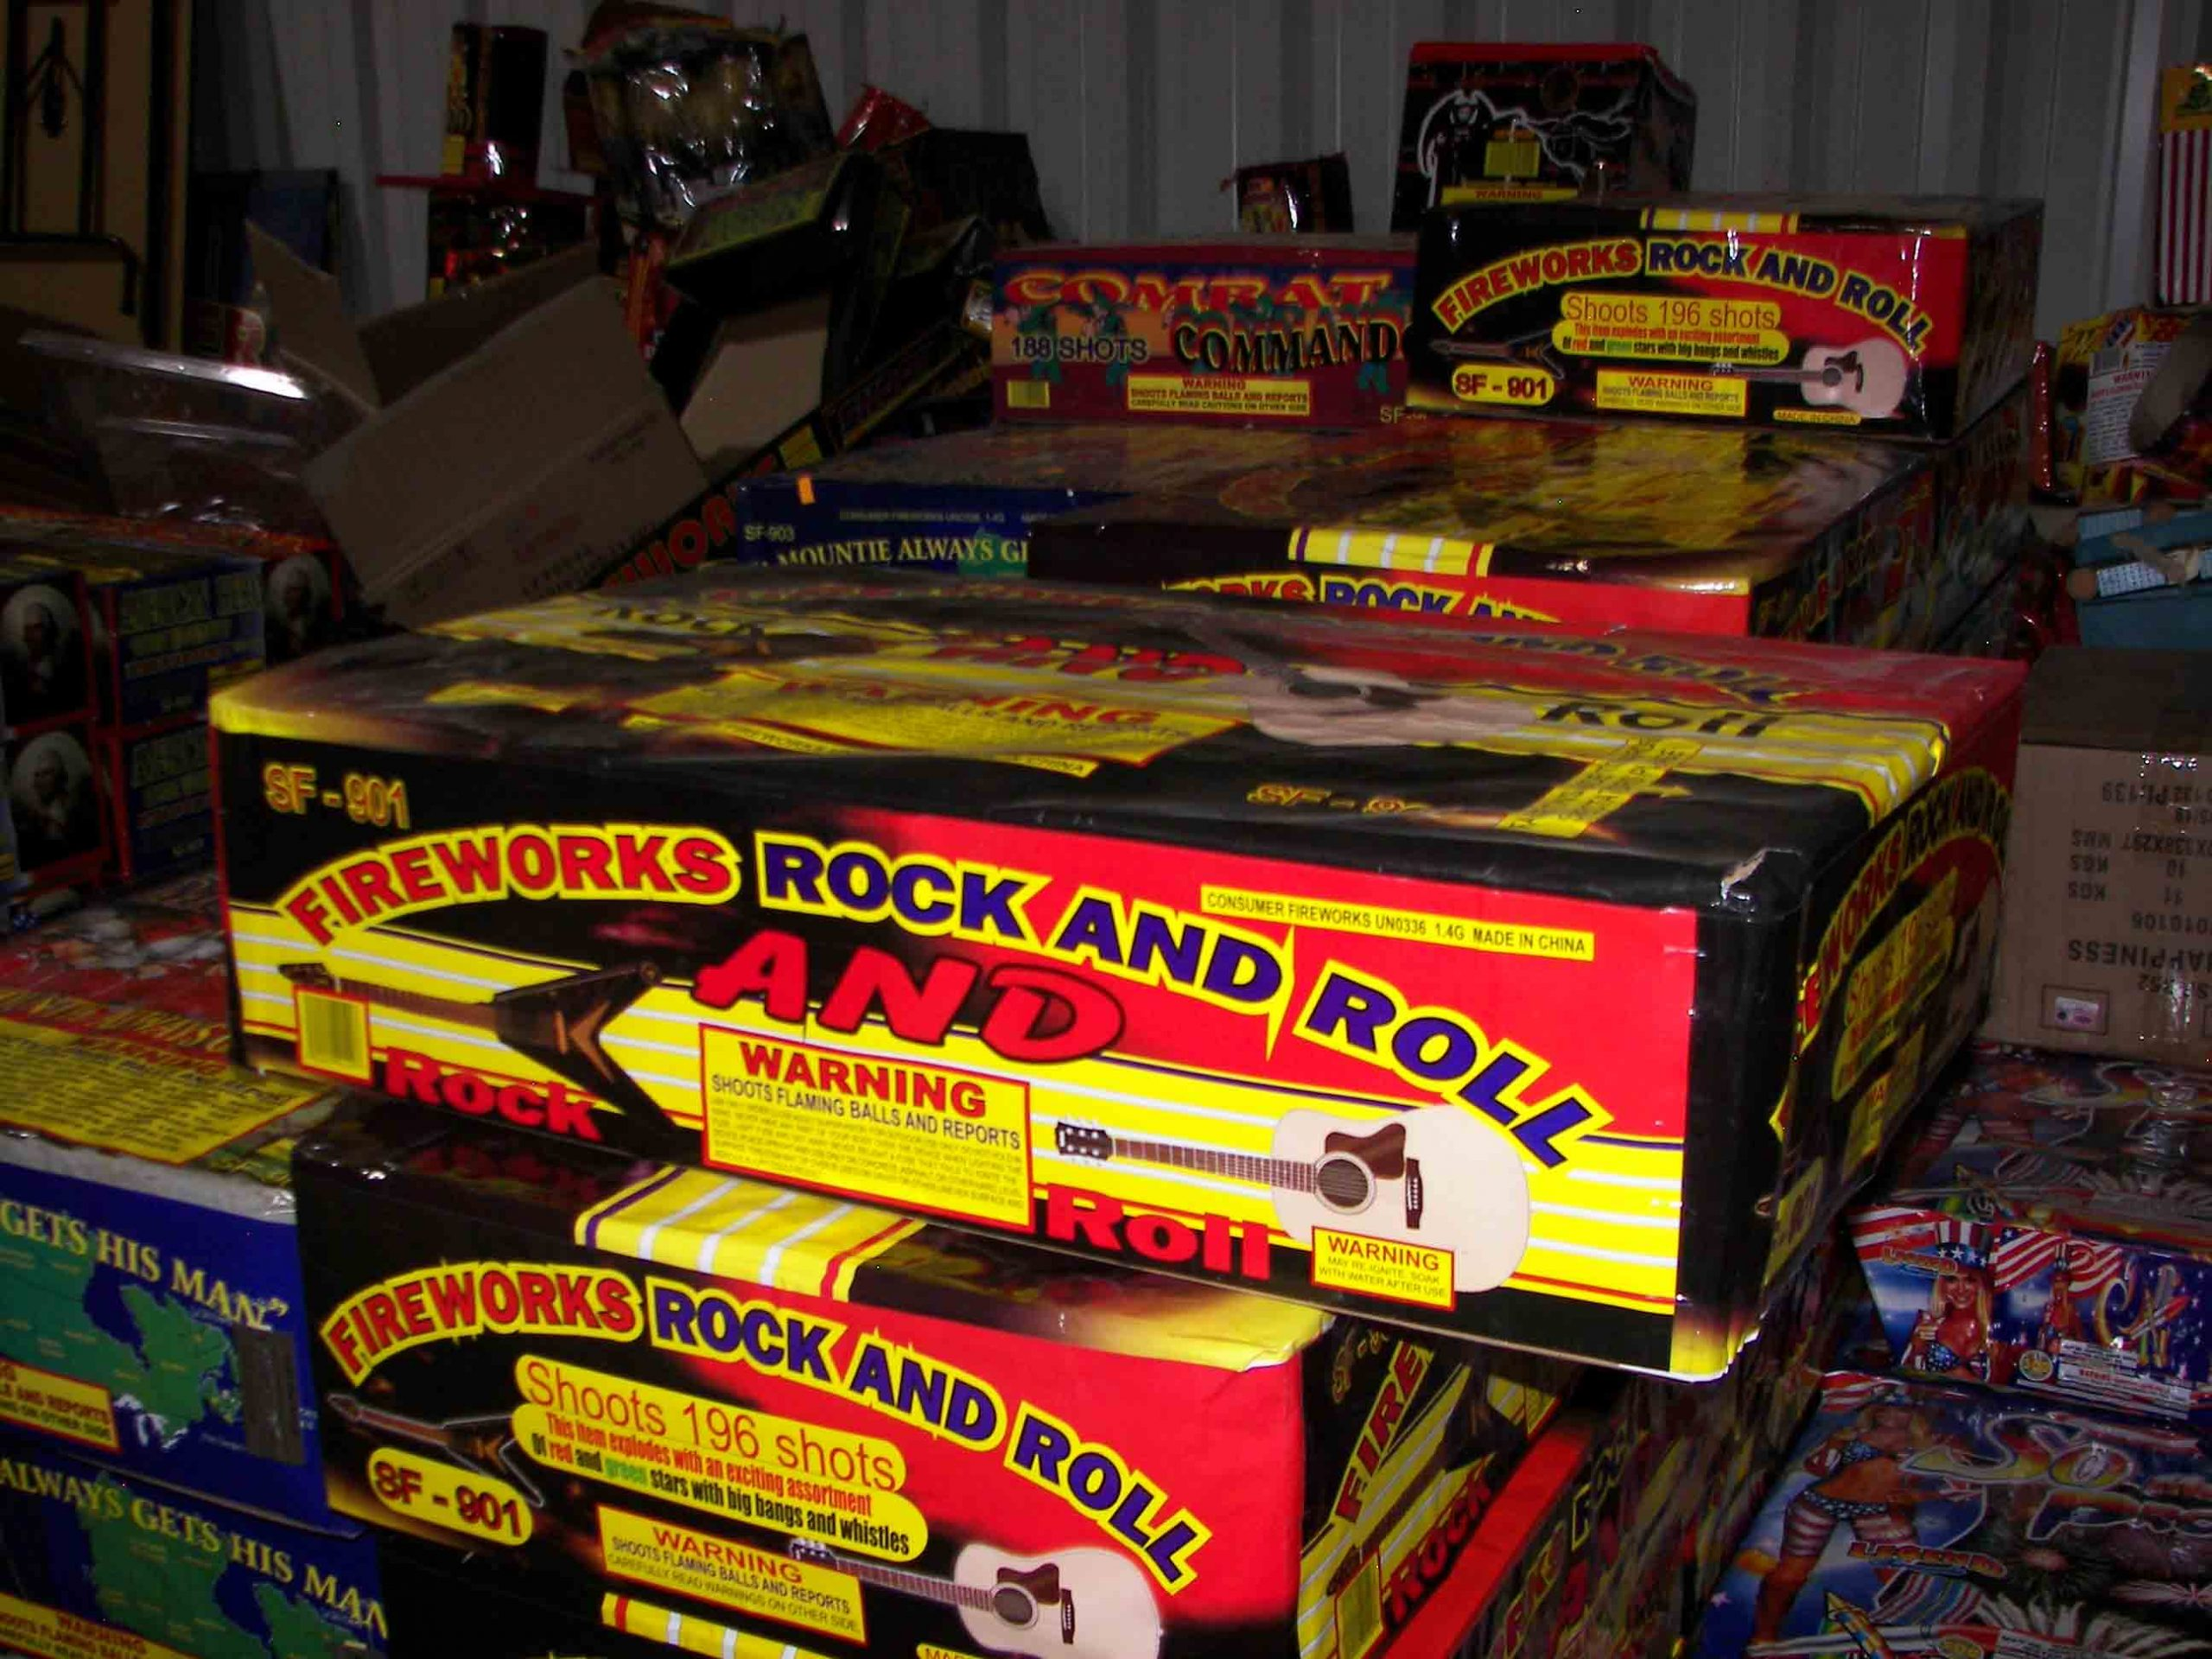 FIREWORKS ROCK AND ROLL (A 500 gram, grand finale) Image